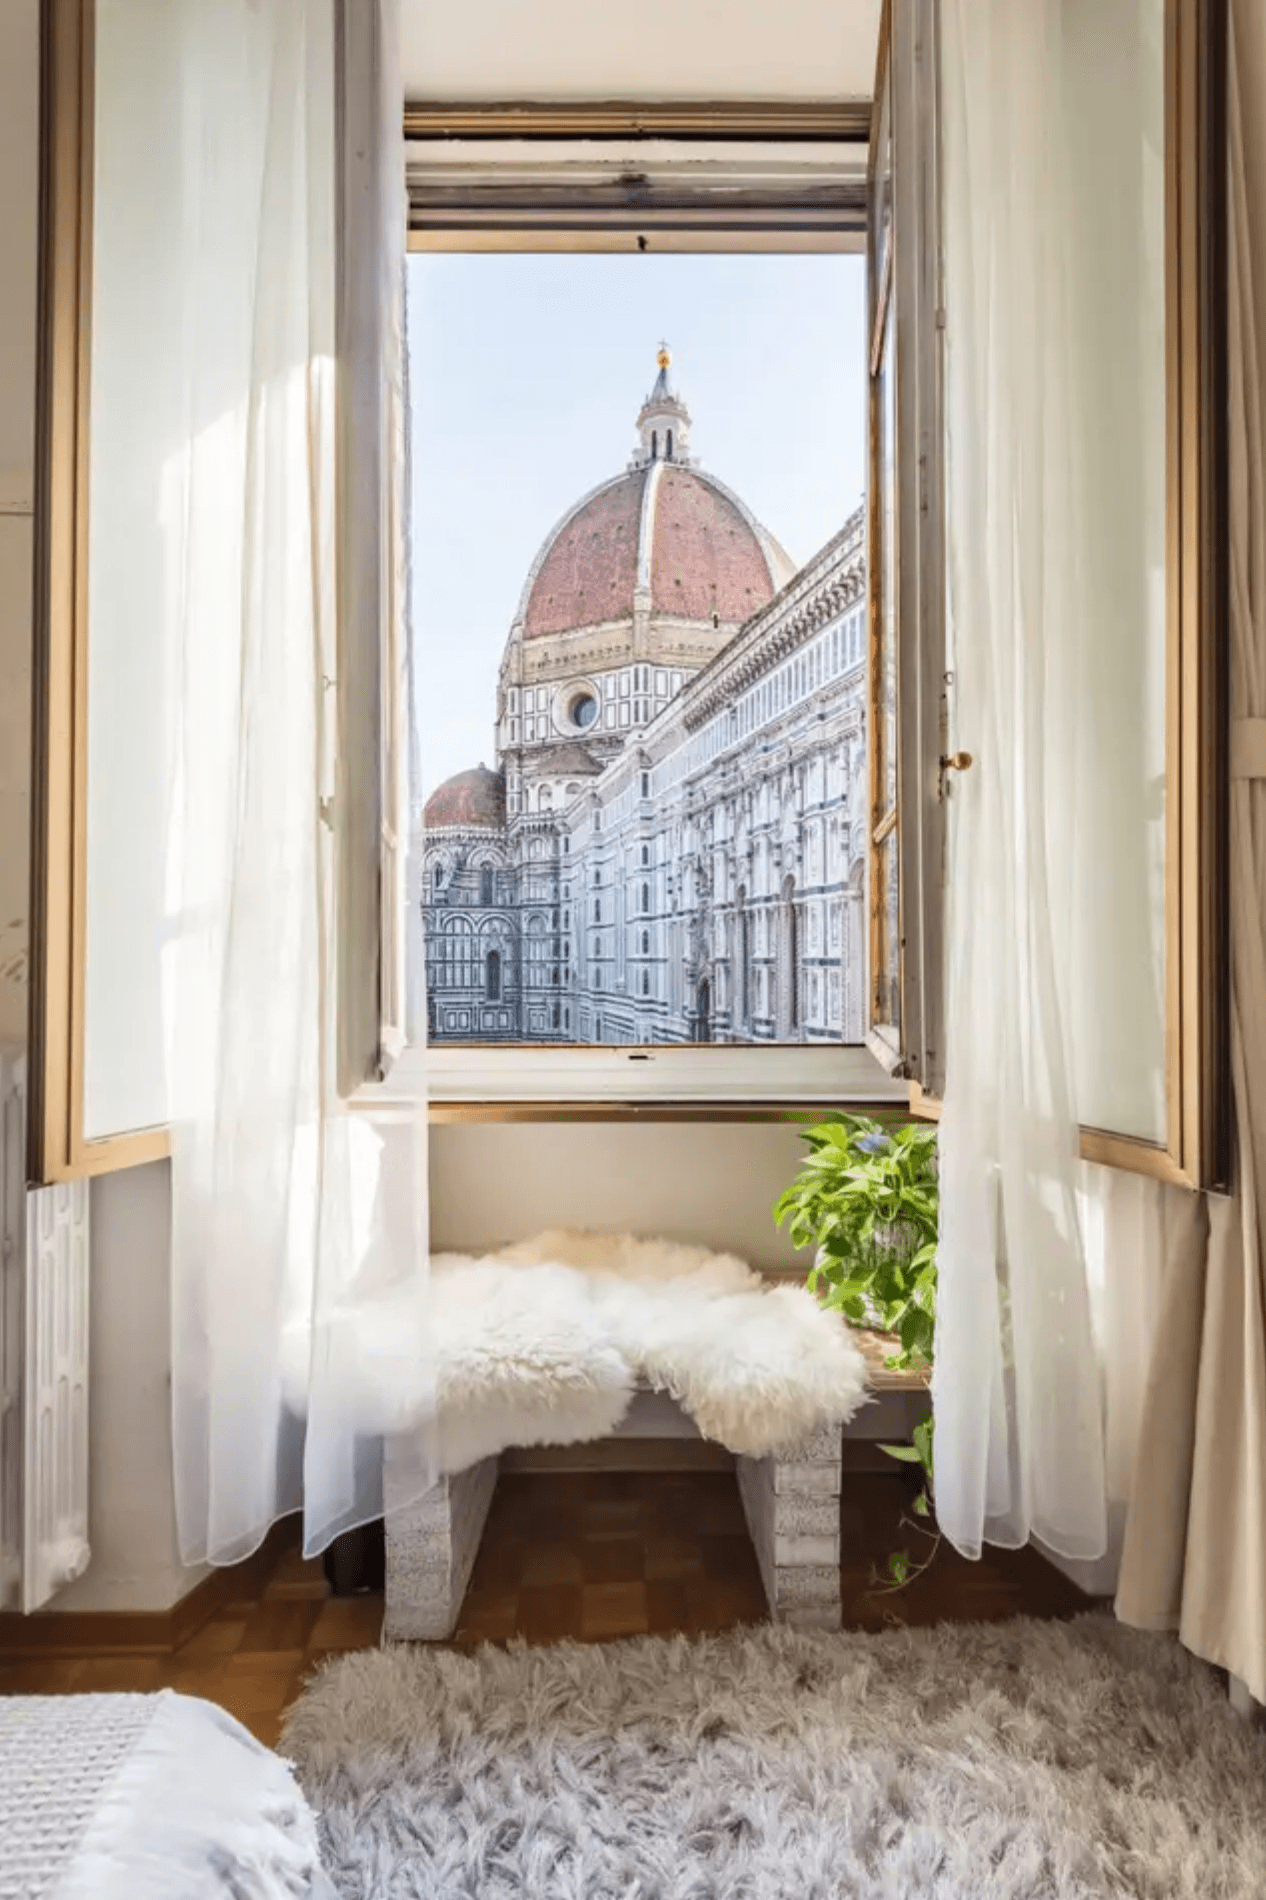 Best Airbnbs in Europe, by travel blogger What The Fab